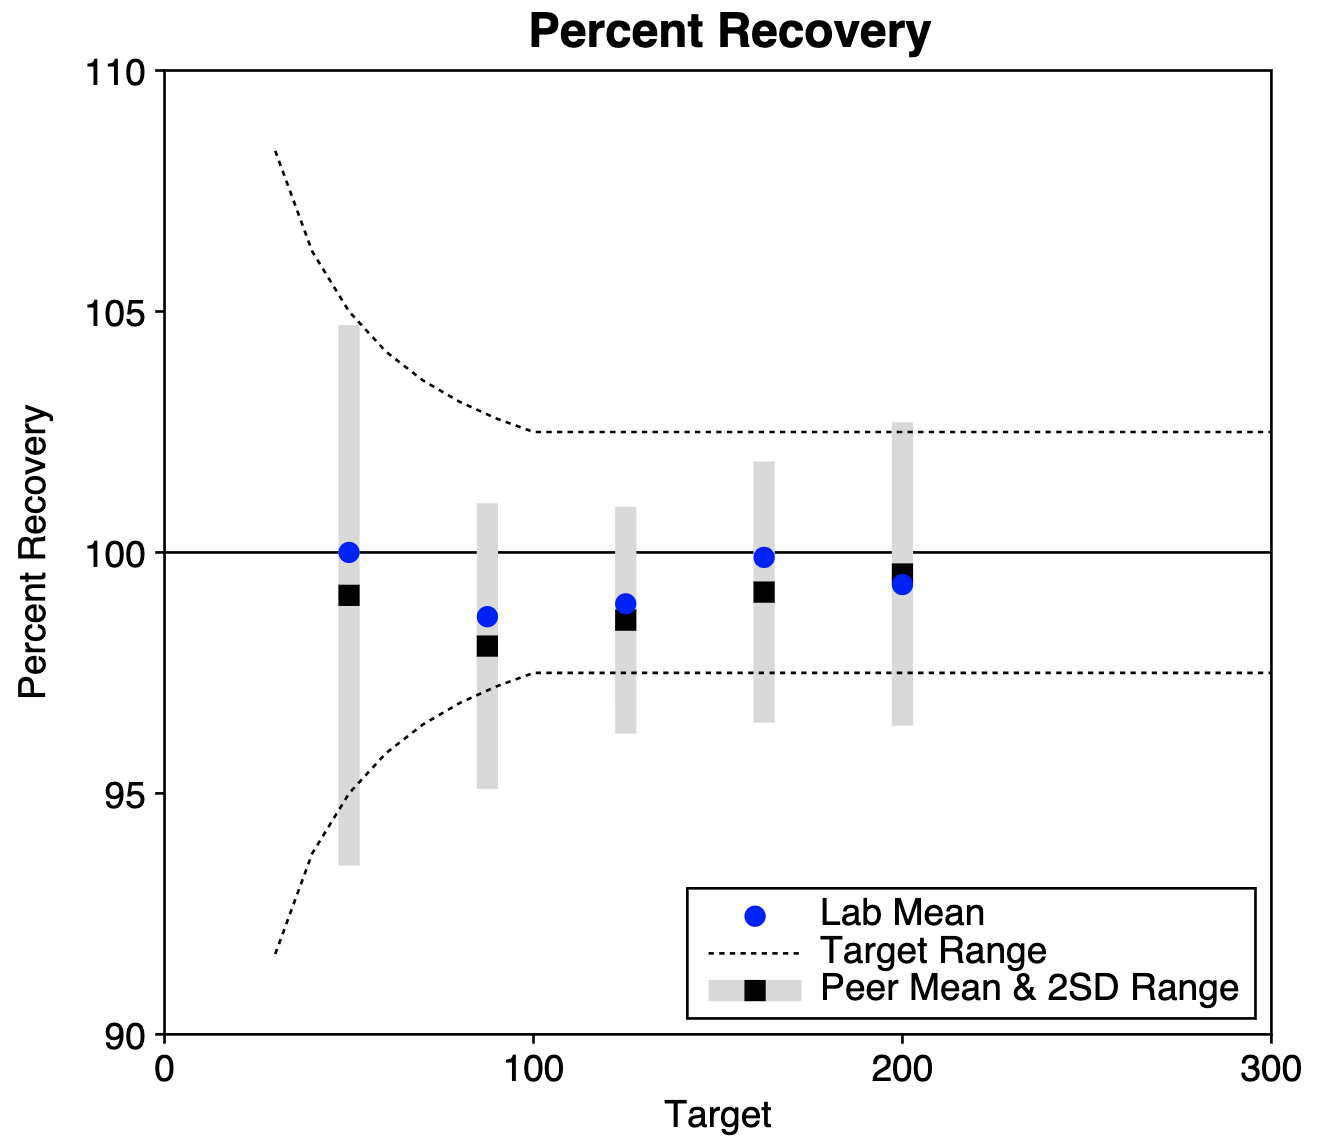 Percent Recovery